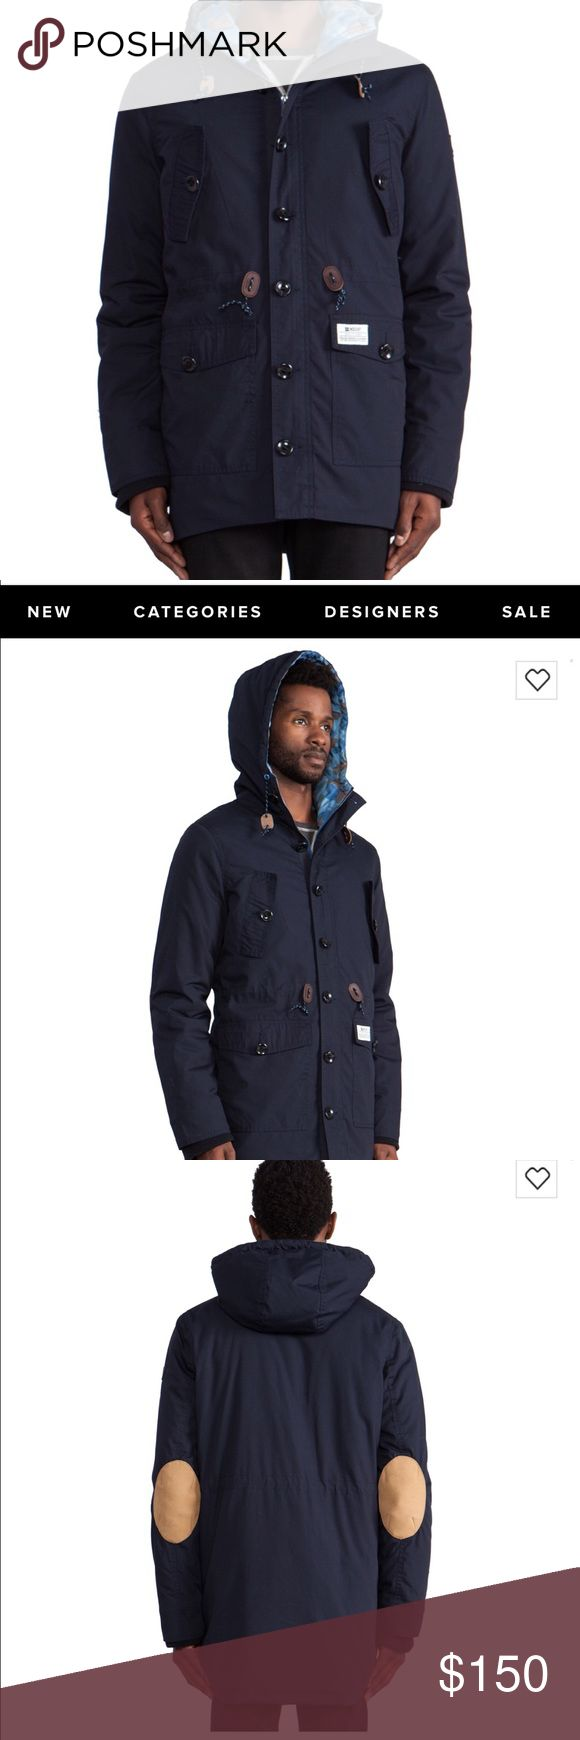 """Insight """"The Rainmaker"""" Navy down Parka Insight """"The Rainmaker"""" Goose filled parka. Navy outer — Camo lined inner. Leather elbow patches and leather details. This parka features a drawstring hood for added protection, as well as elbow patches and zipper with button closure for extra aesthetic. This jacket is an essential piece for the winter season.  Drawstring hood Zipper with button closure Horizontal chest pockets Hand pockets with button closure Leather Elbow patches Patterned lining…"""